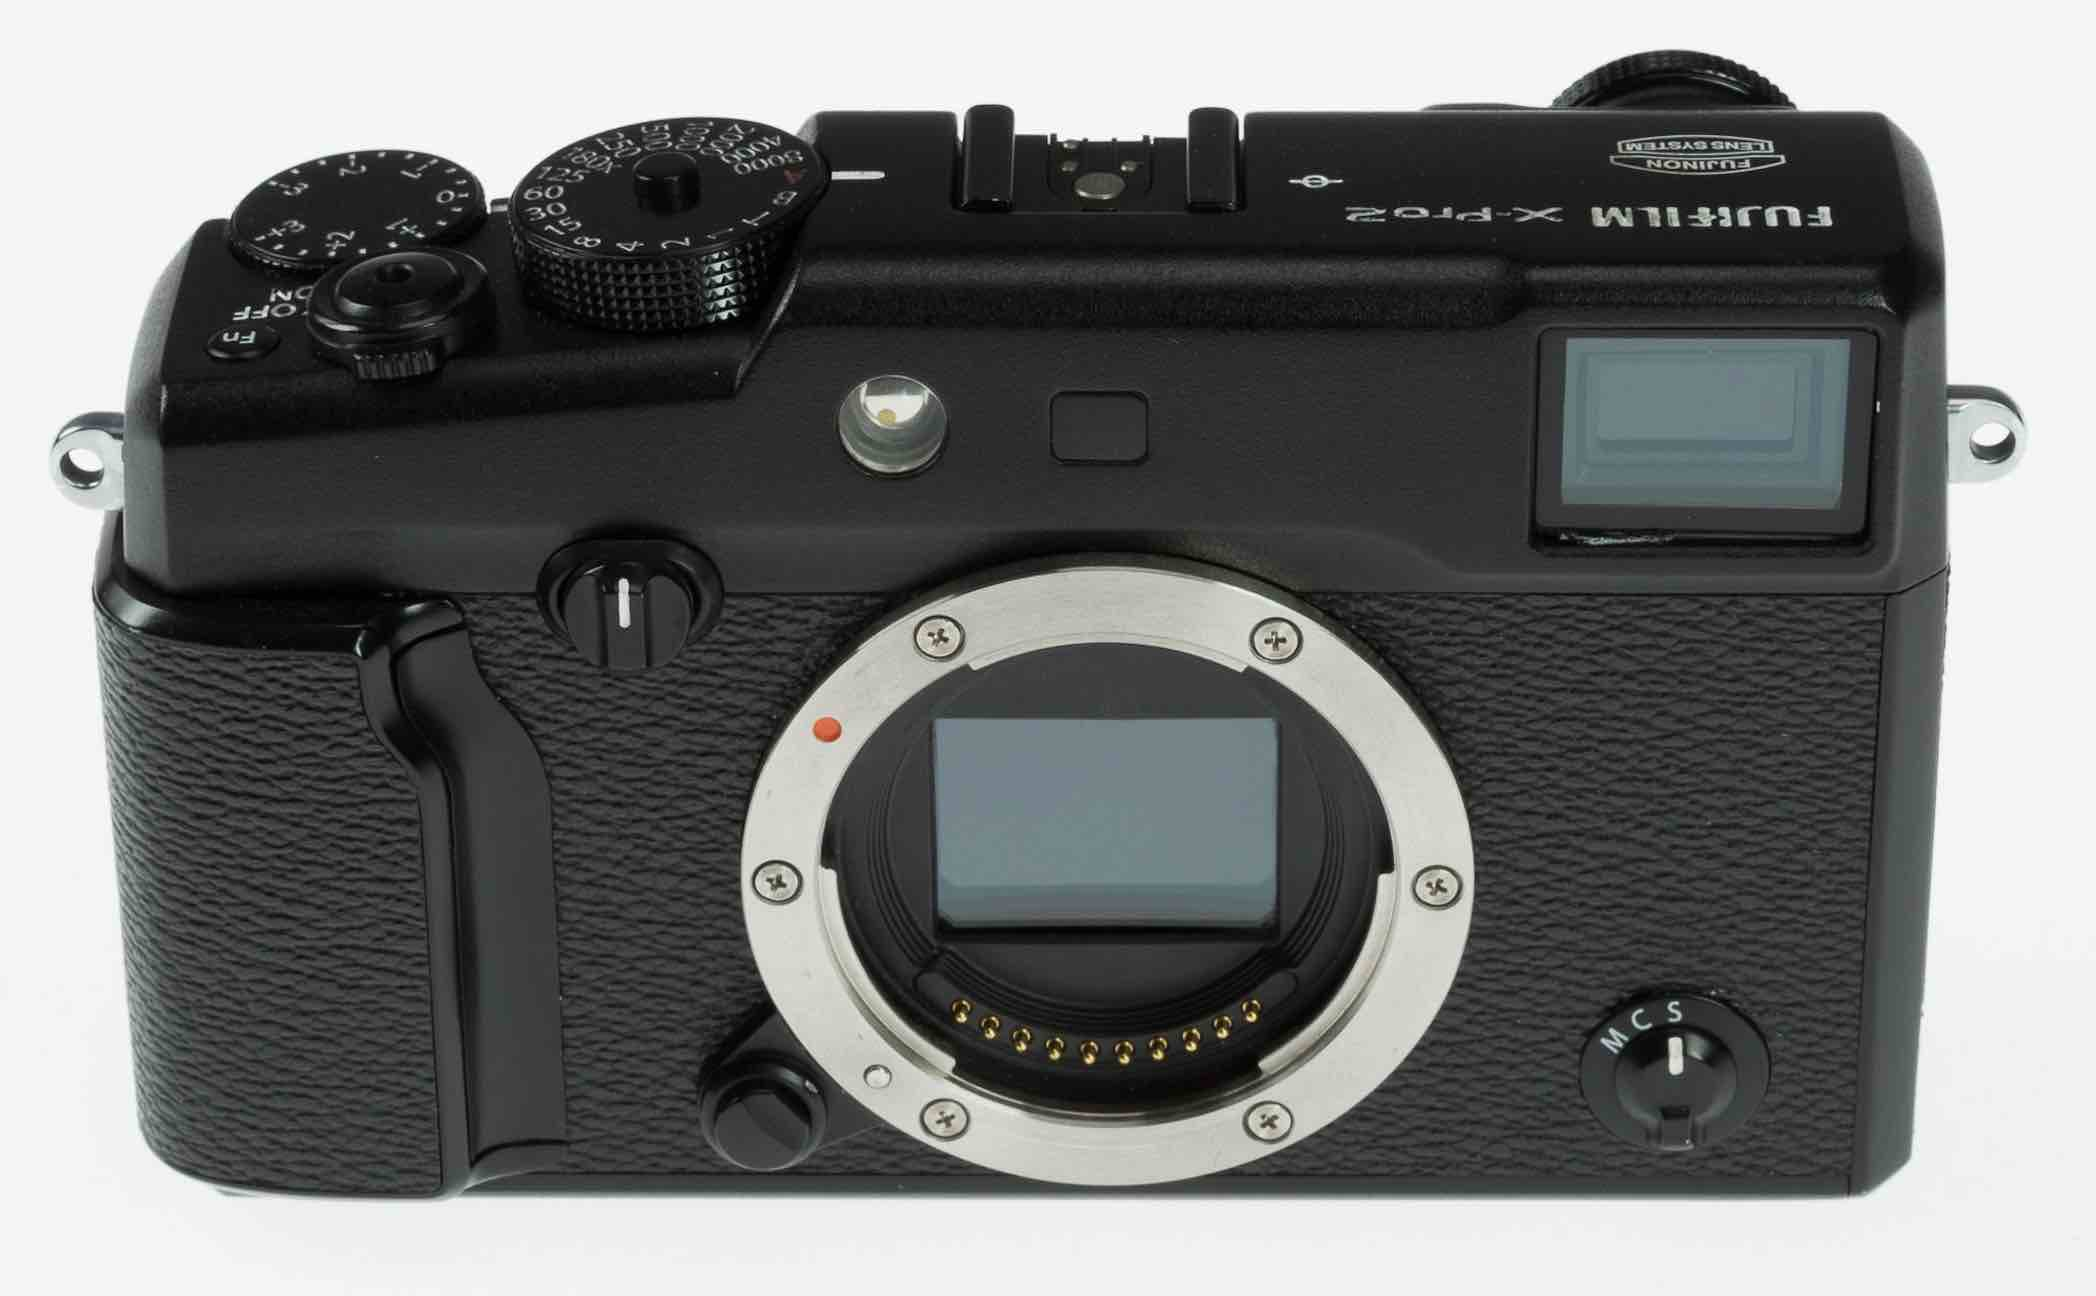 Fujifilm X-Pro3 Concepts and Share Your X-Pro3 Wish List